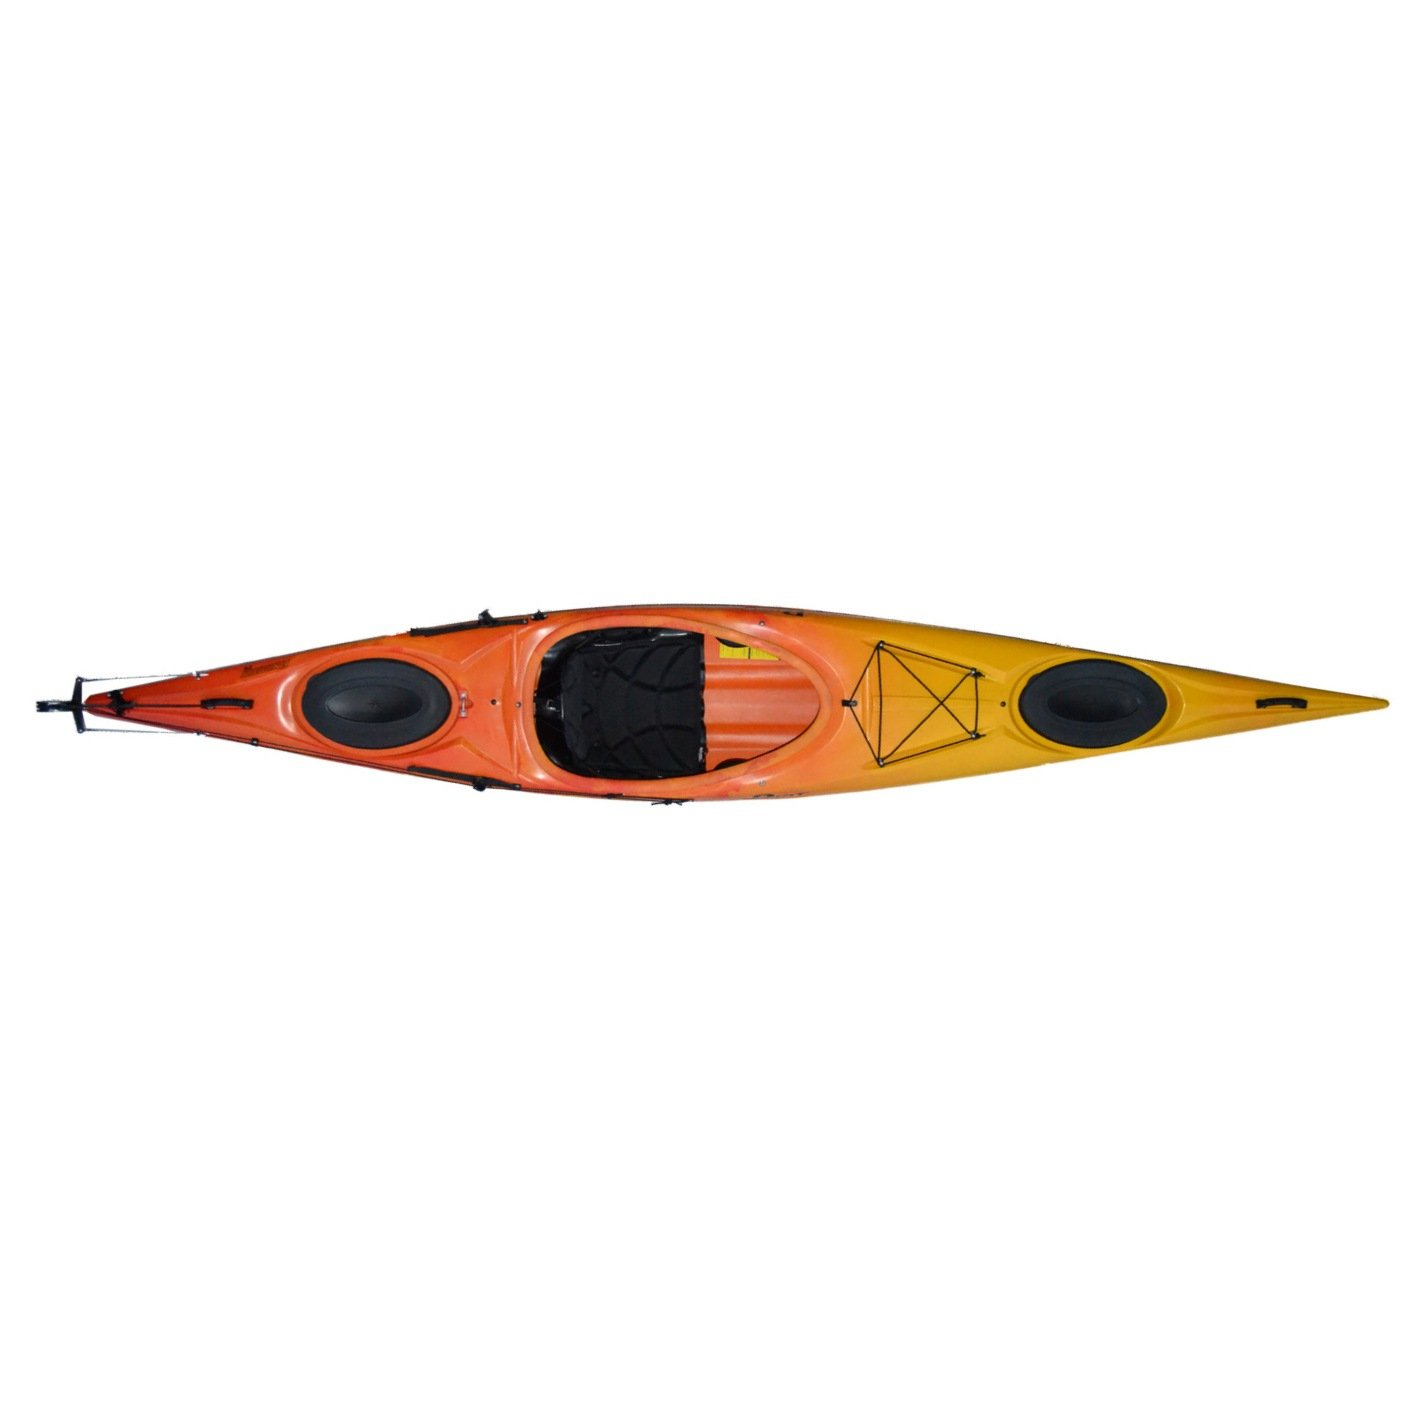 Riot Kayaks Enduro 14 HV Flatwater Day Touring Kayak (Yellow/Orange, 14-Feet) by Riot Kayaks